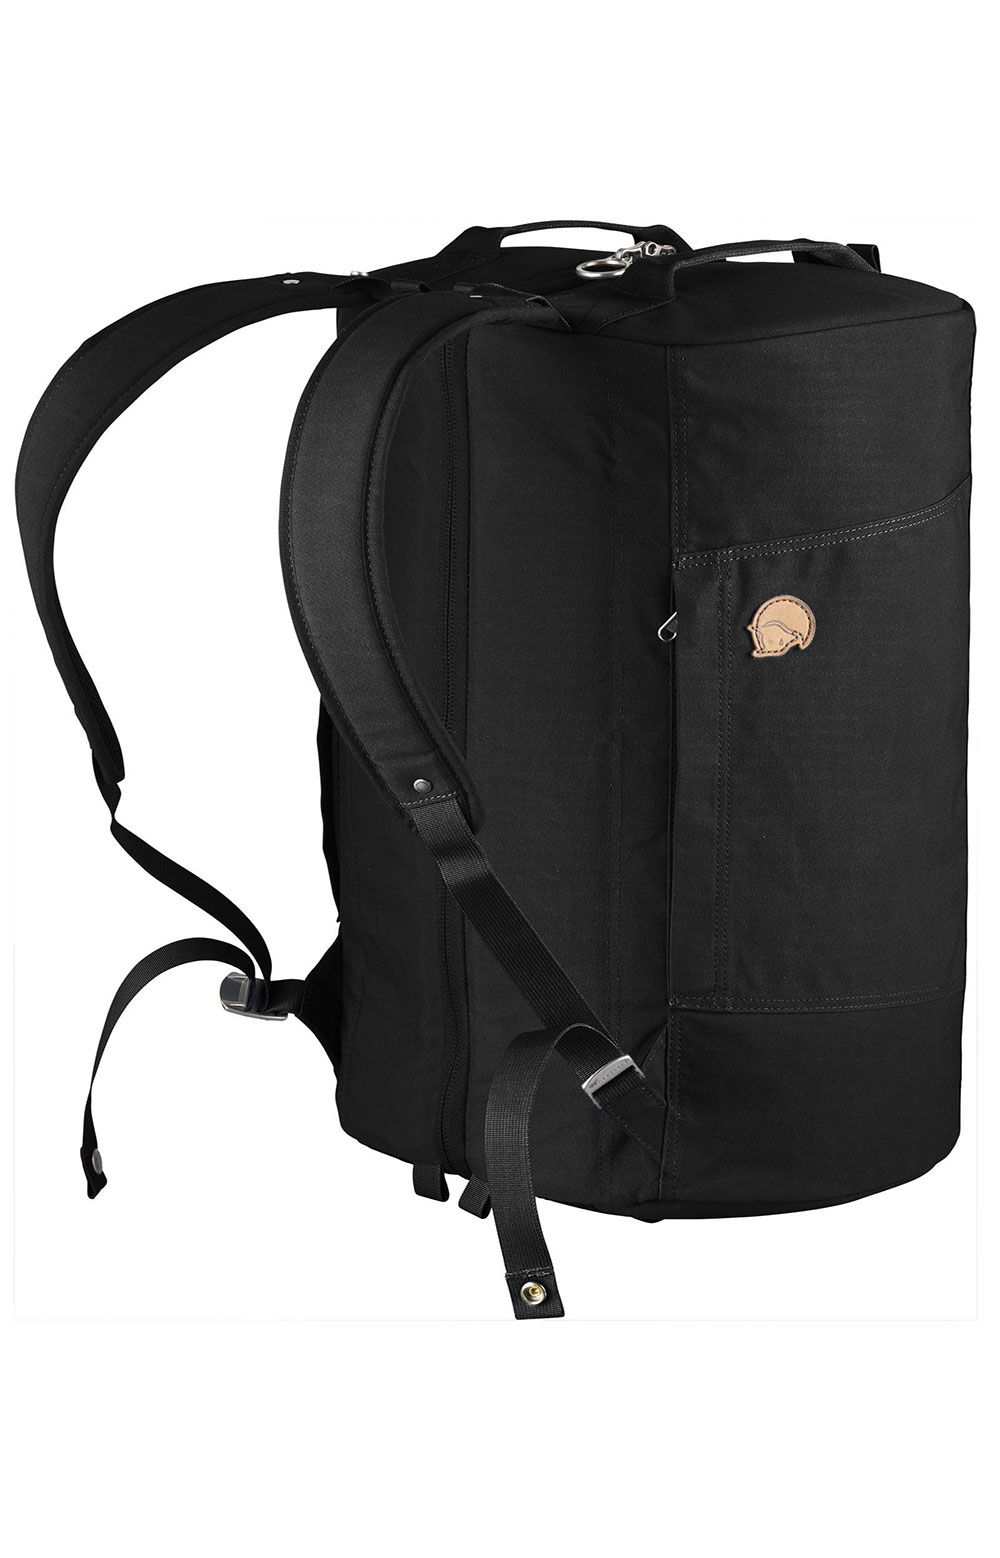 Splitpack Large Backpack - Black